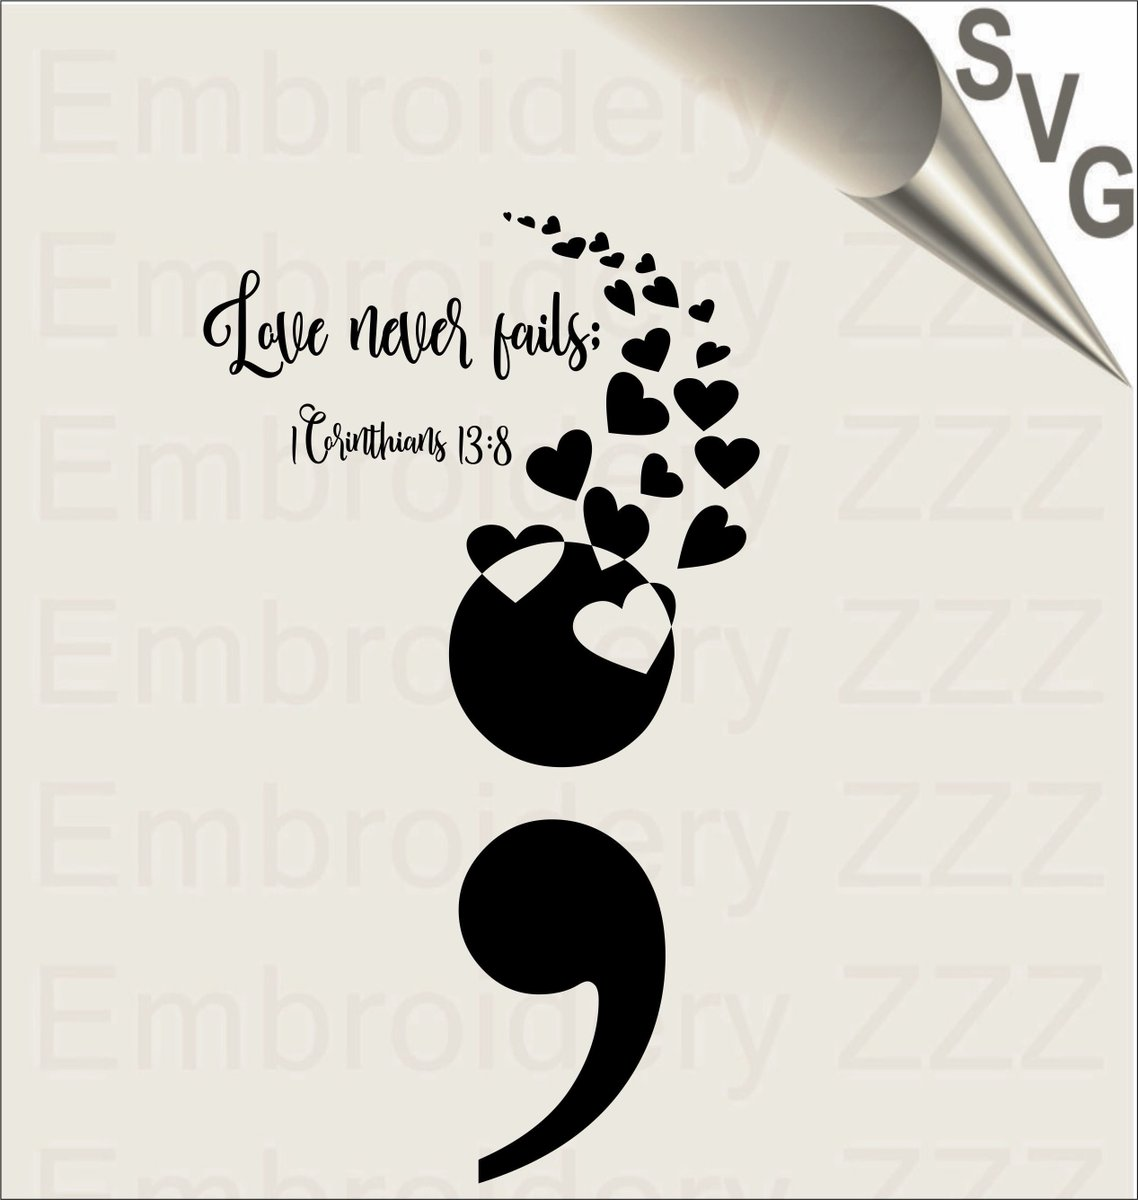 Embroidery Zone No Twitter Excited To Share The Latest Addition To My Etsy Shop Suicide Prevention Svg Semicolon Printable Hearts Spray Svg Love Never Fails Svg Suicide Awareness Svg Semi Colon Vector